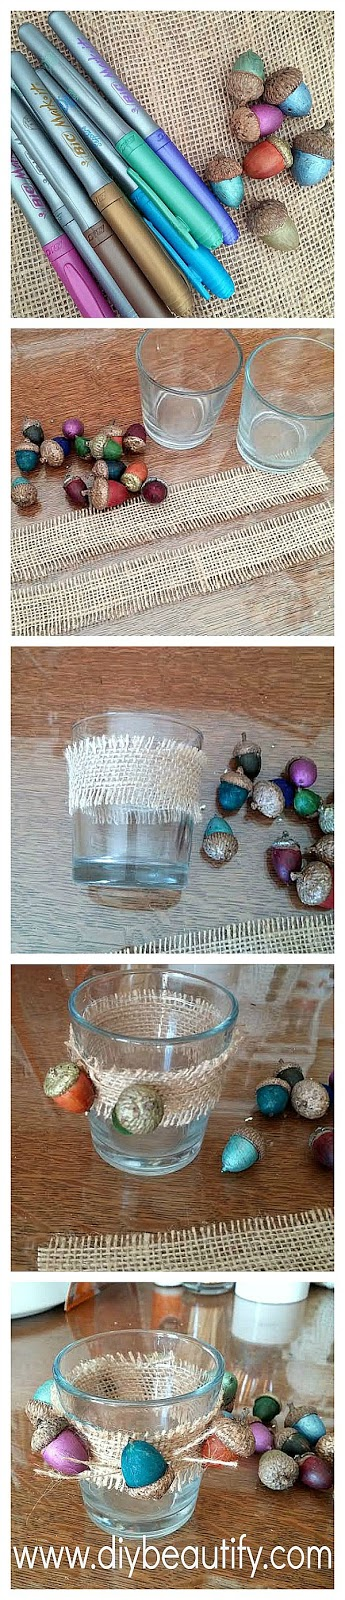 Easy DIY burlap wrapped votives with acorns DIY beautify blog